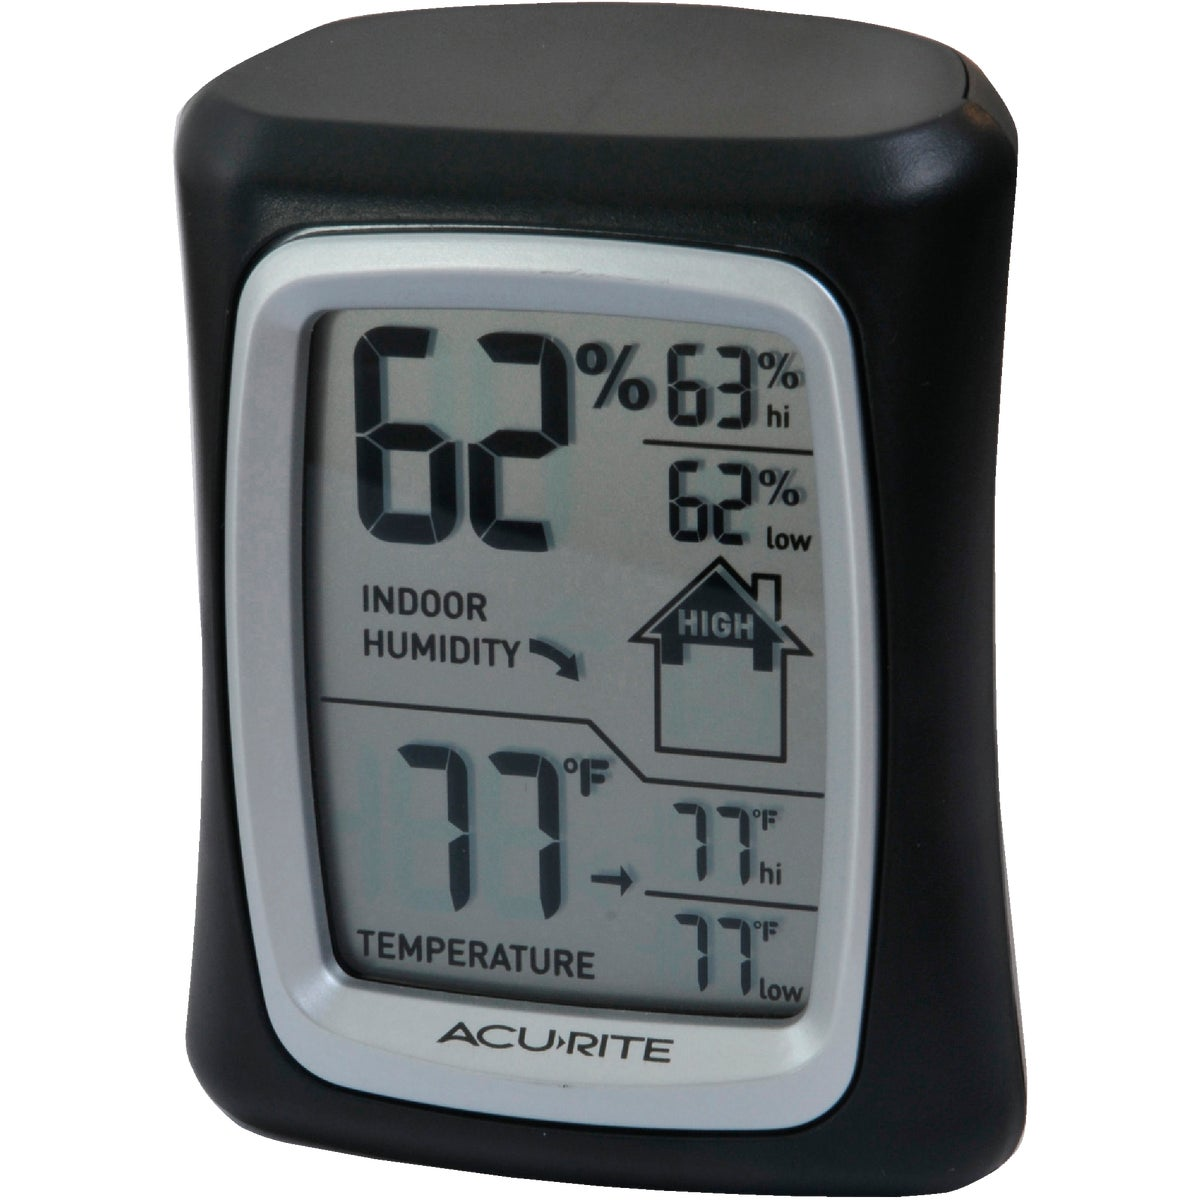 HOME COMFORT MONITOR - 00325 by Chaney Instrument Co